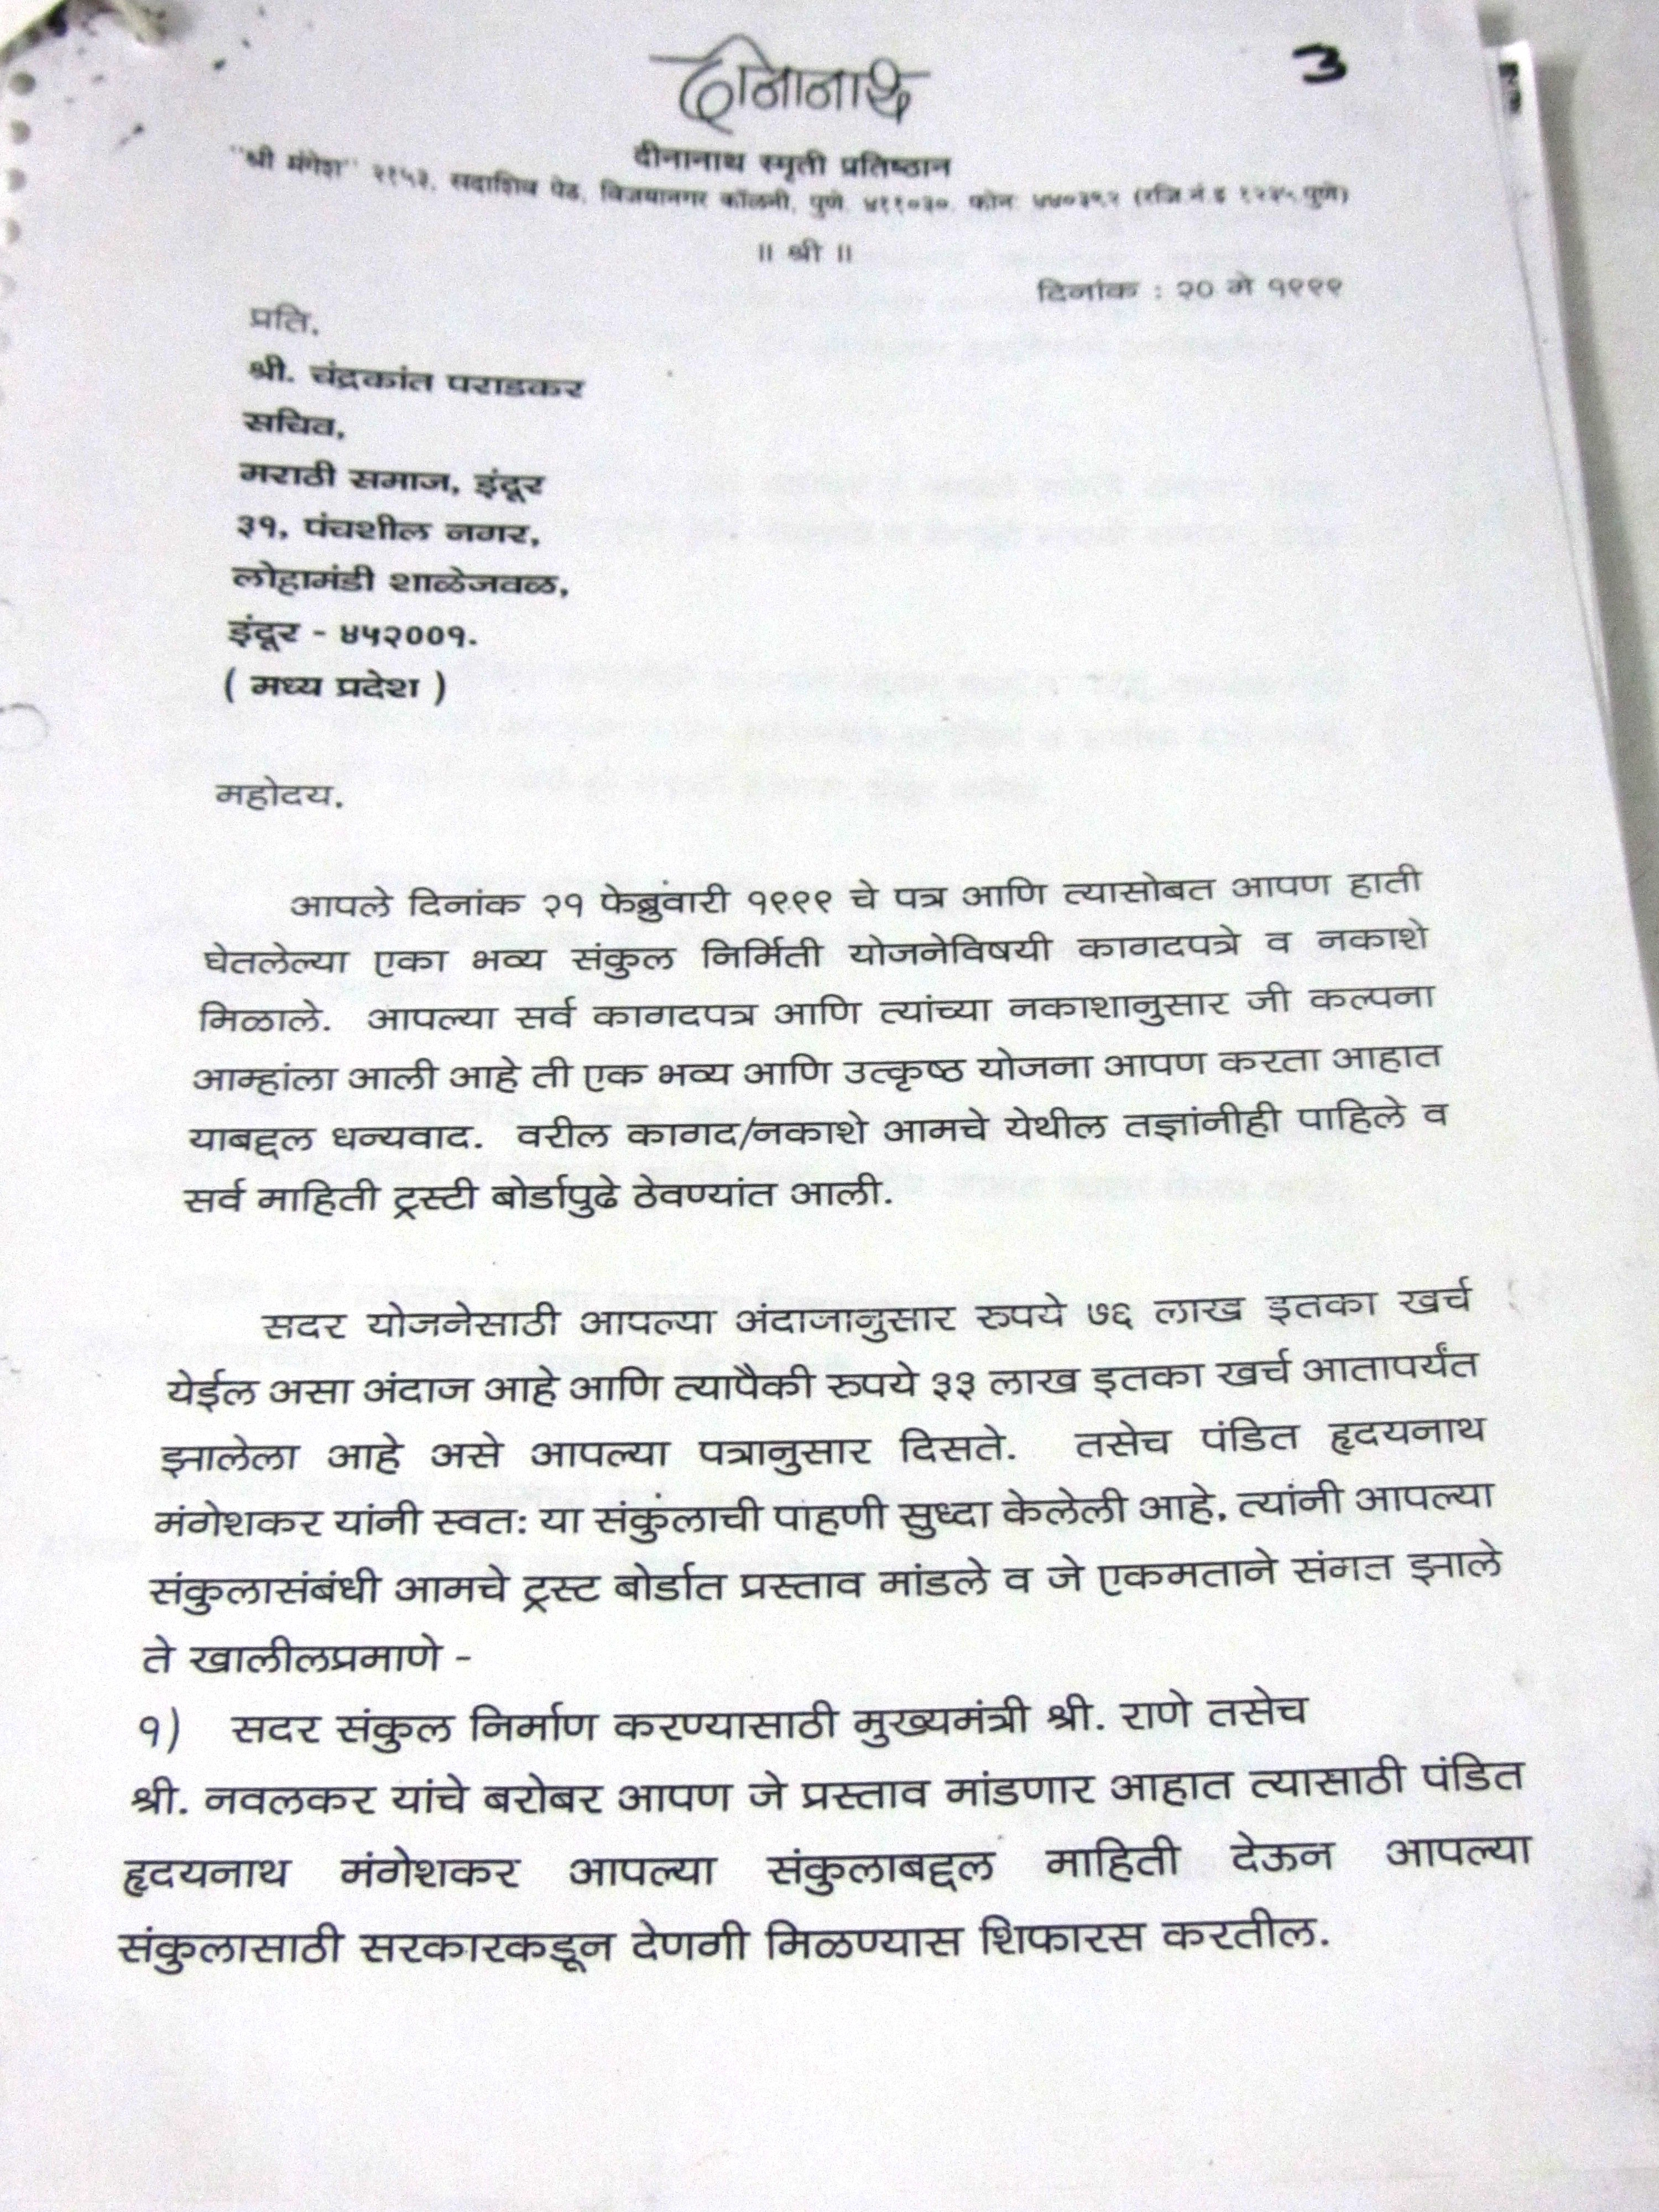 Indore marathi bodys members face jail because the mangeshkars indore marathi bodys members face jail because the mangeshkars failed to keep their word spiritdancerdesigns Images